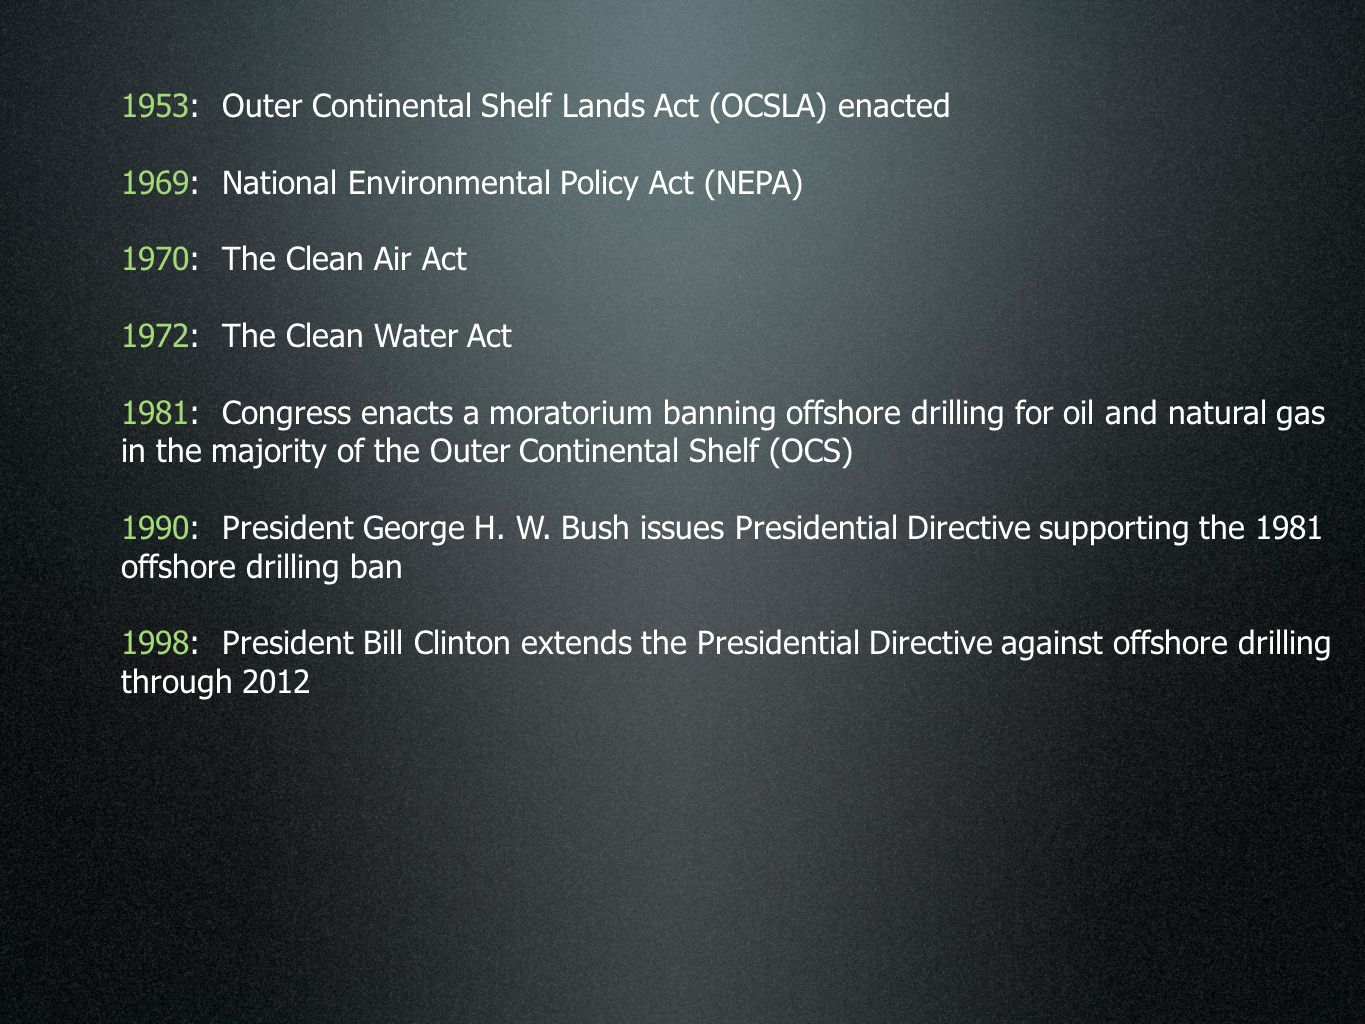 1953: Outer Continental Shelf Lands Act (OCSLA) enacted 1969: National Environmental Policy Act (NEPA) 1970: The Clean Air Act 1972: The Clean Water A